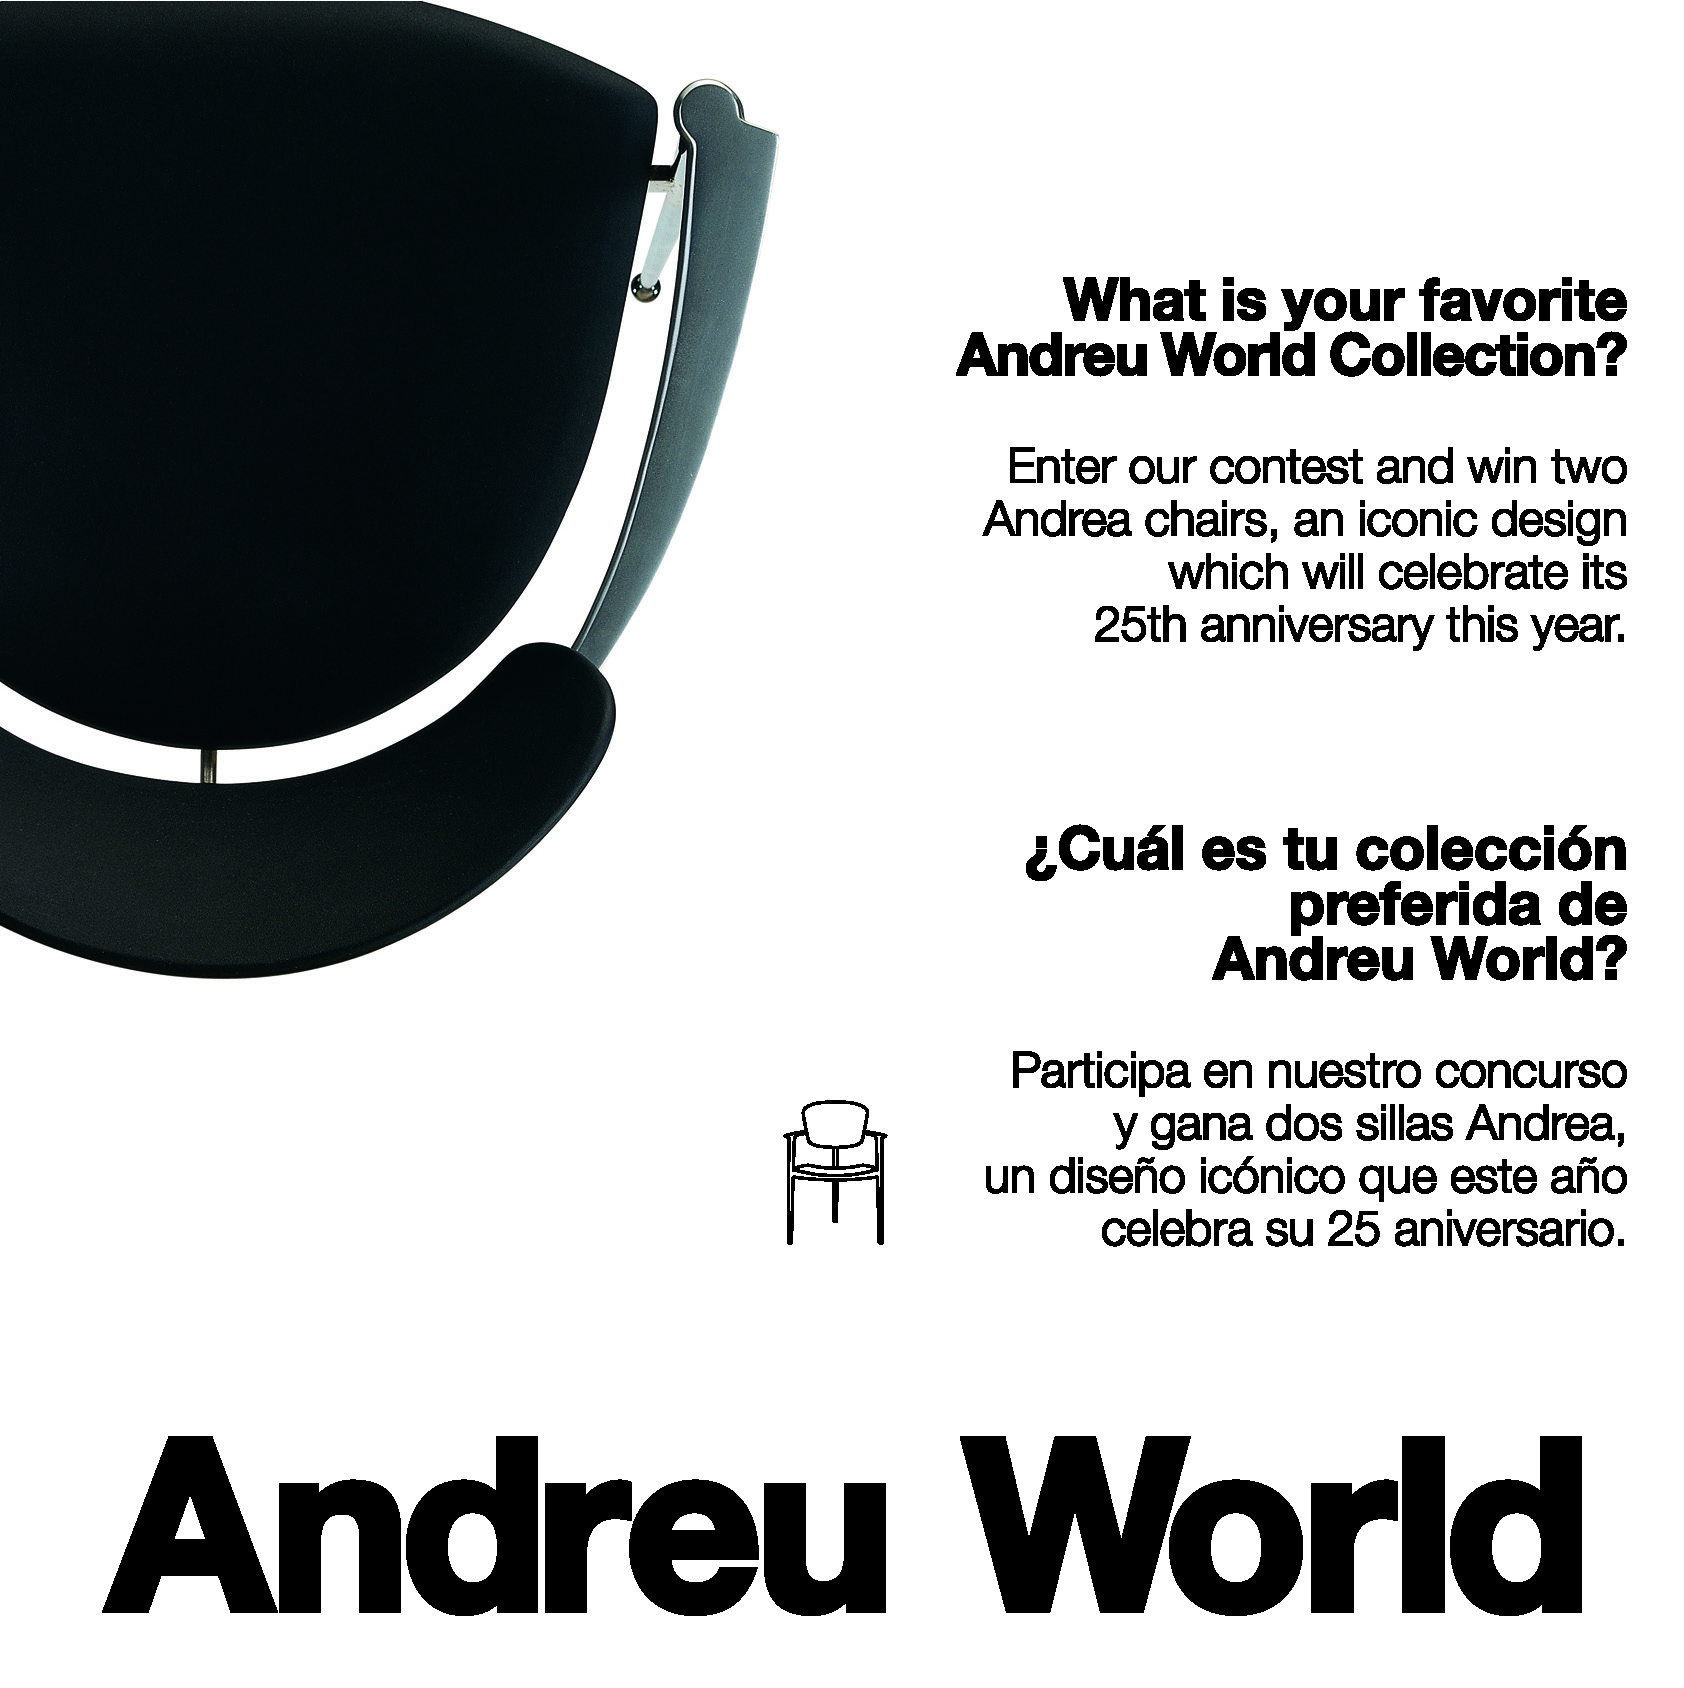 Take part in Andreu World's Facebook contest to win two  Andrea  chairs designed by Joseph Llusca, to coincide with the 25th anniversary of its design.  Details  here .